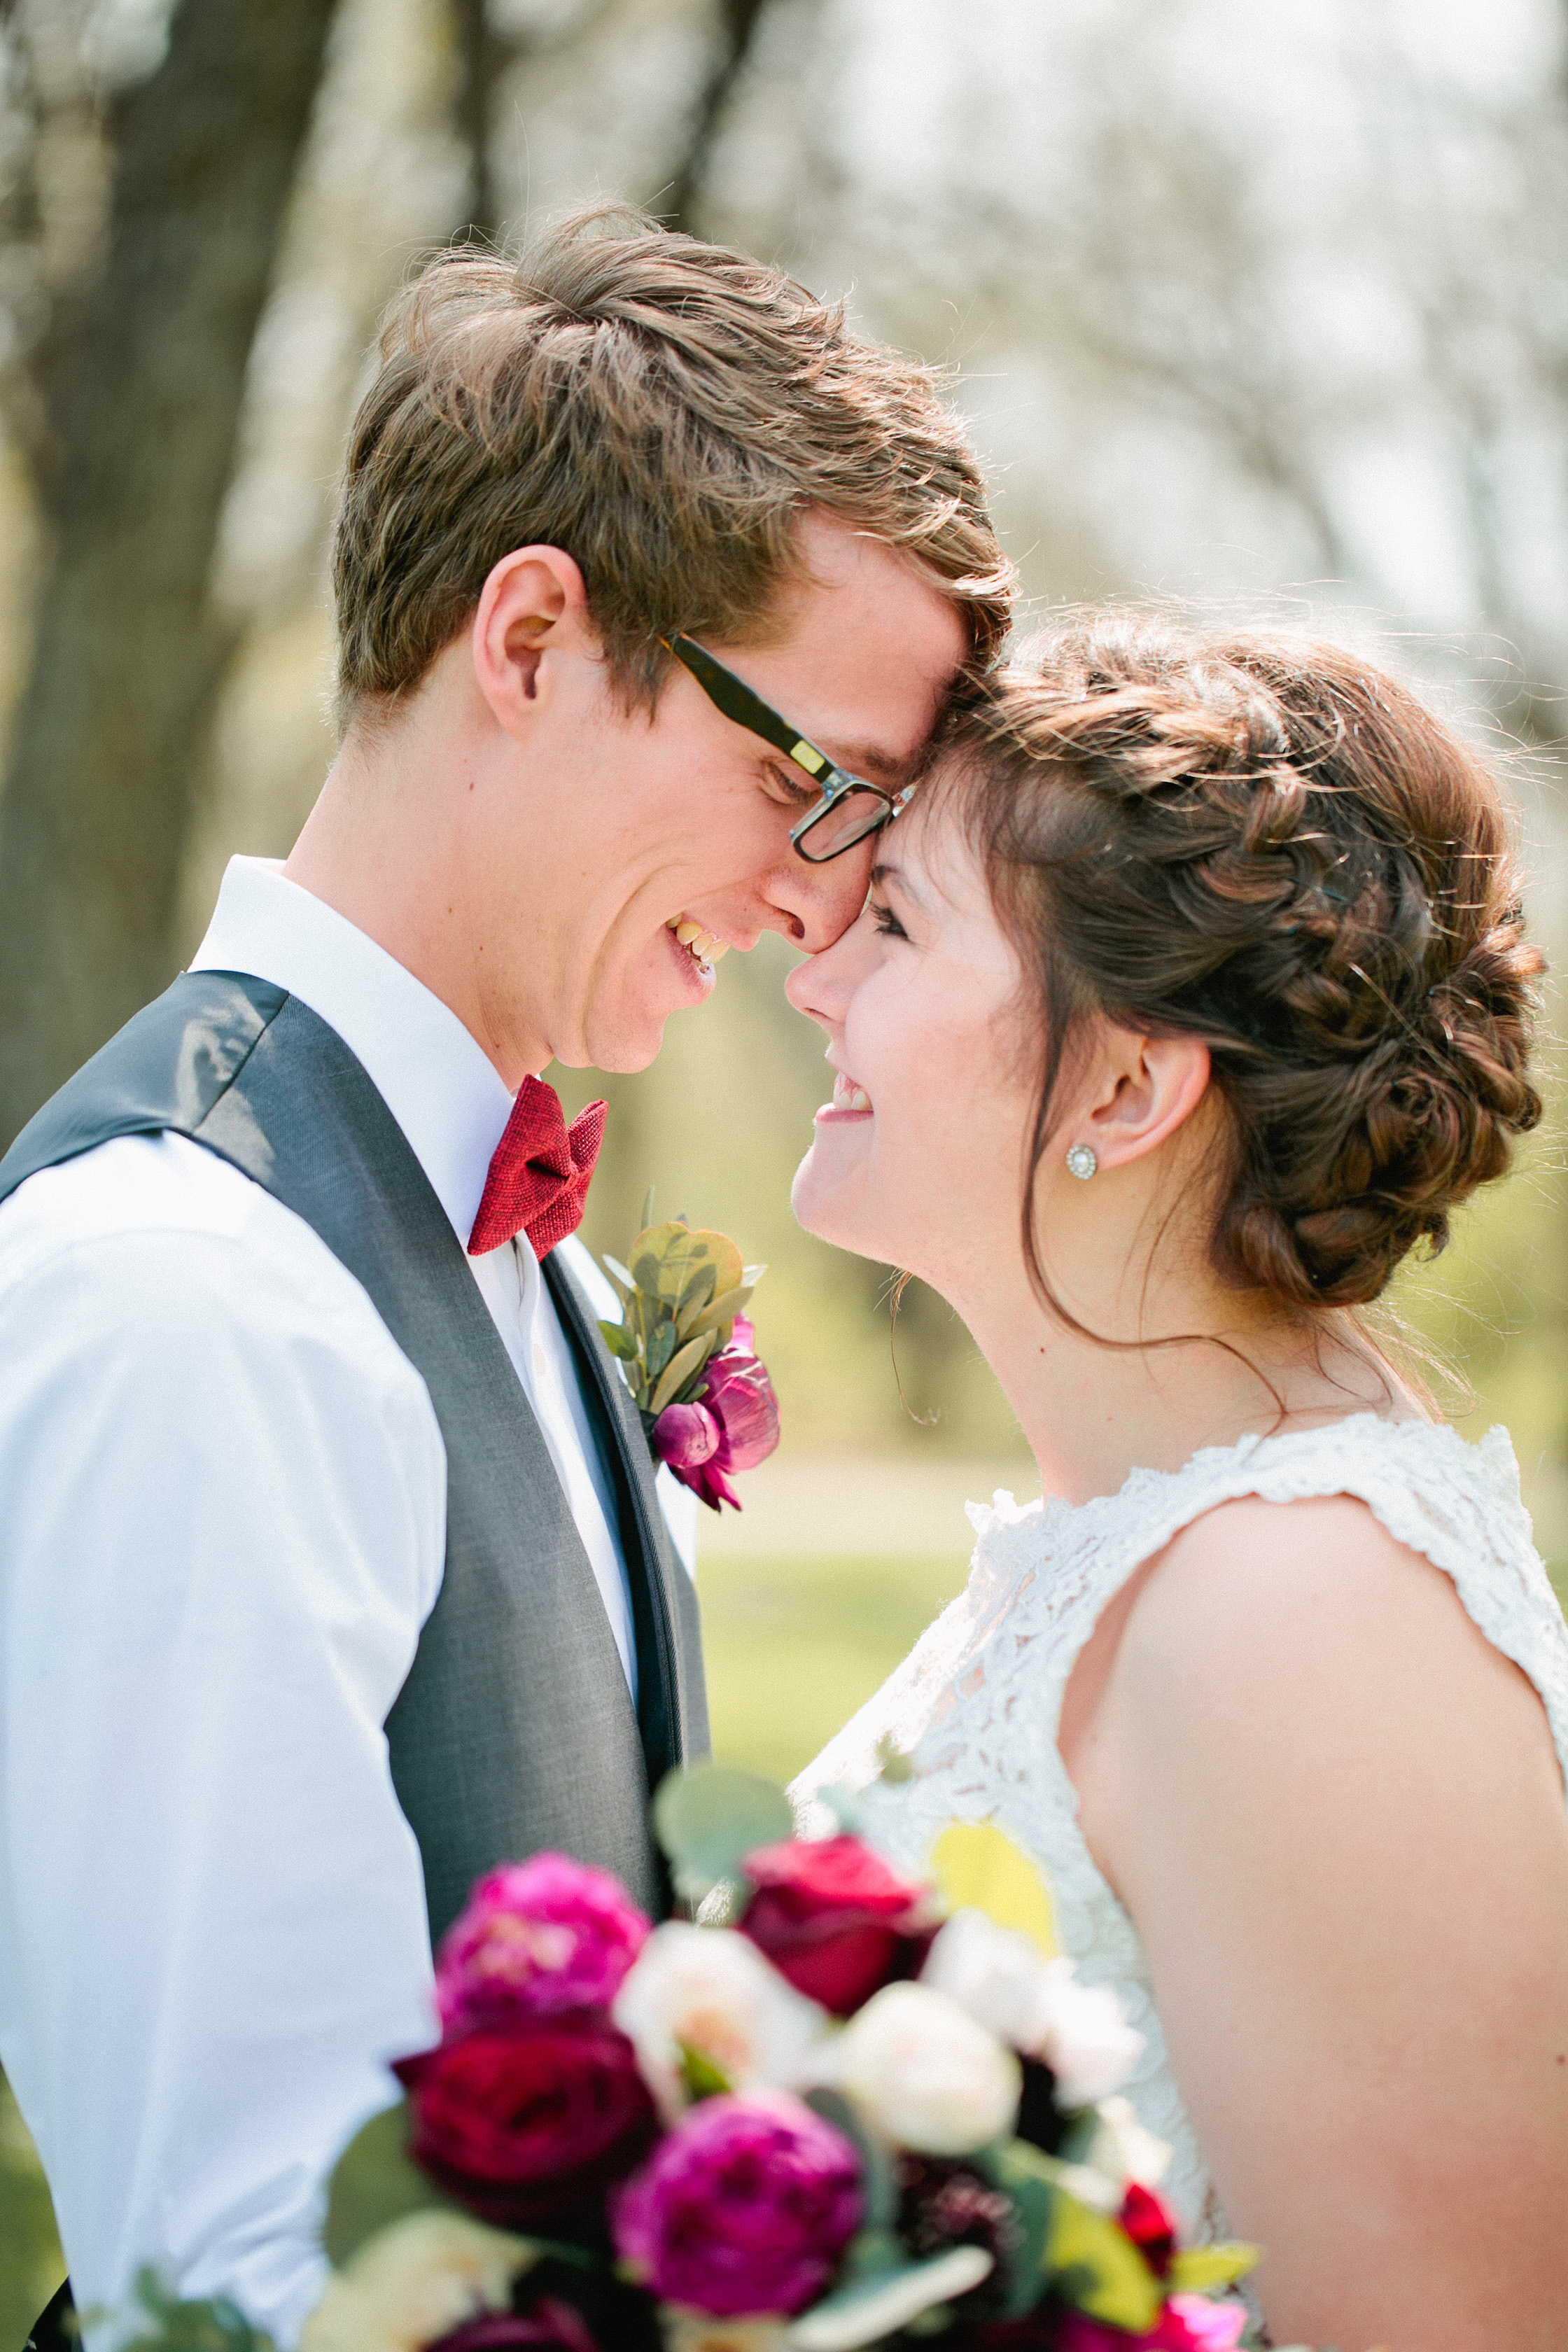 amelia renee is an Iowa acclaimed wedding photographer serving pella newton and des moines iowa